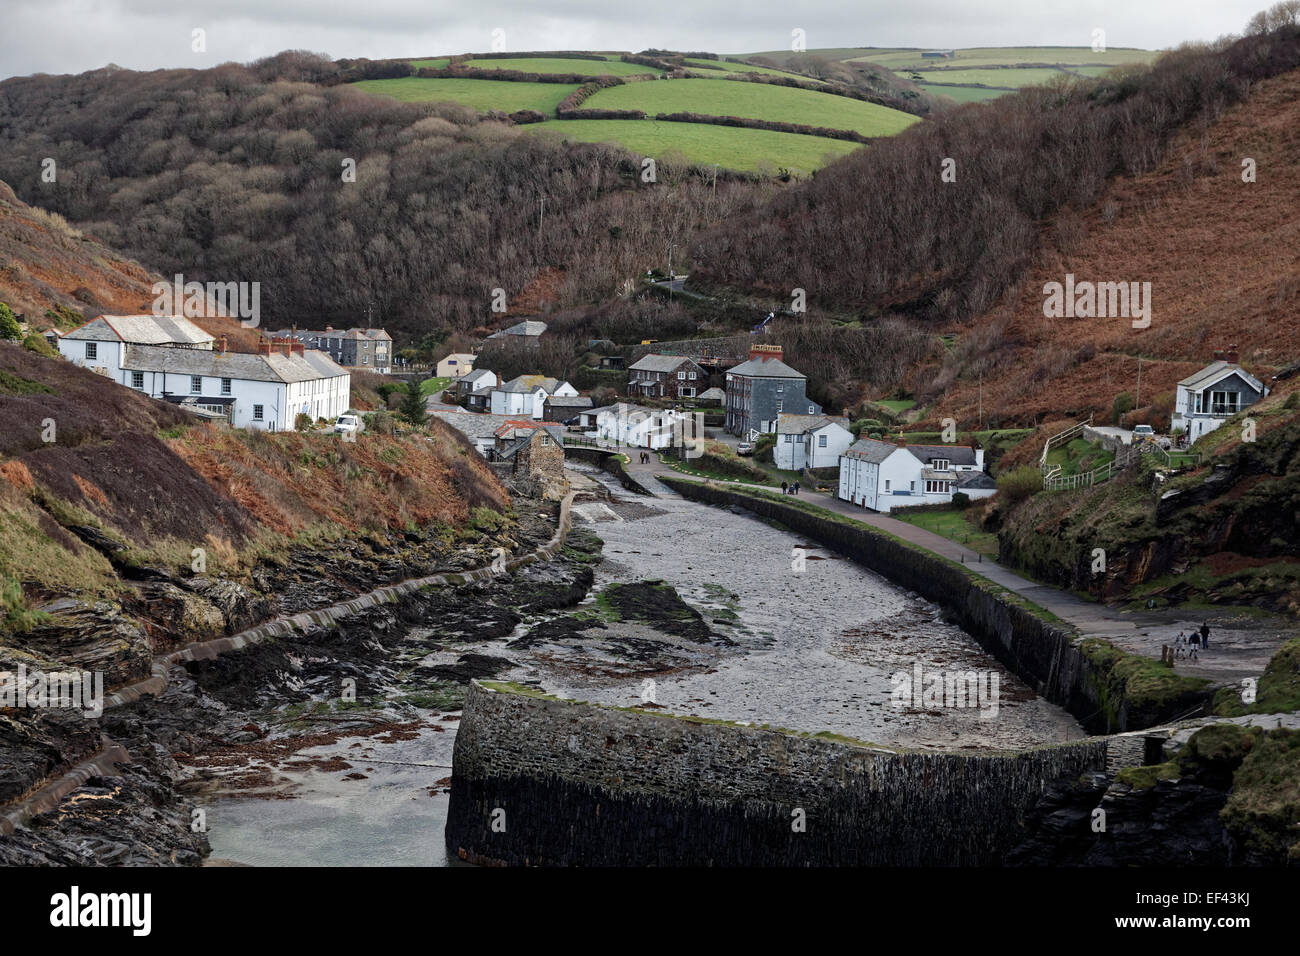 The harbour entrance, Boscastle, Cornwall, England, looking inland toward the picturesque village - Stock Image